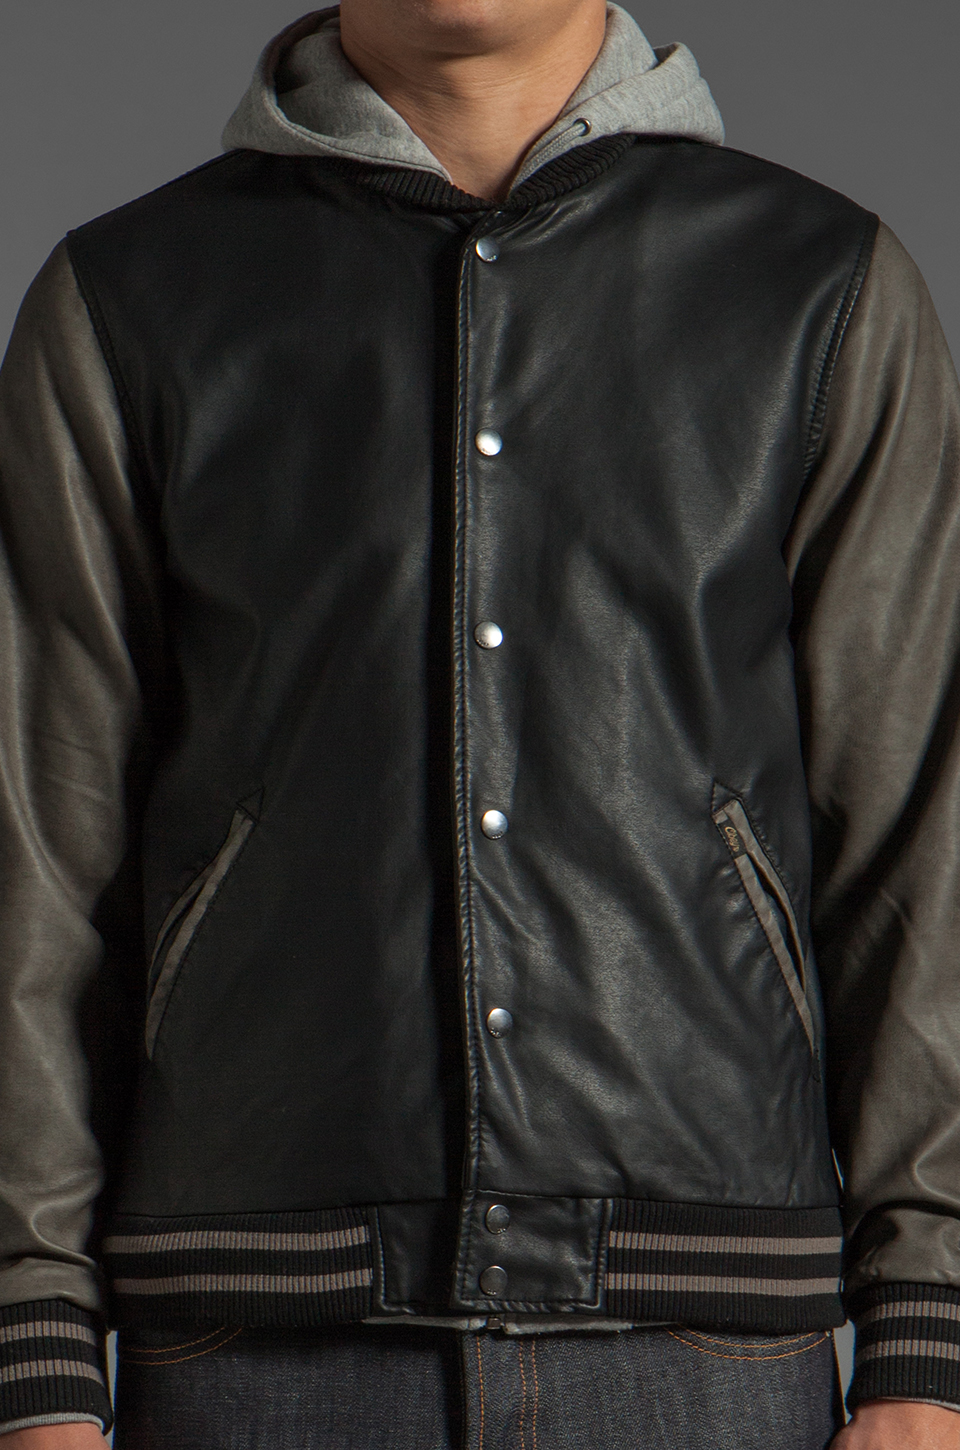 Obey Jealous Lover Dark Red Bomber Jacket at Zumiez : PDP